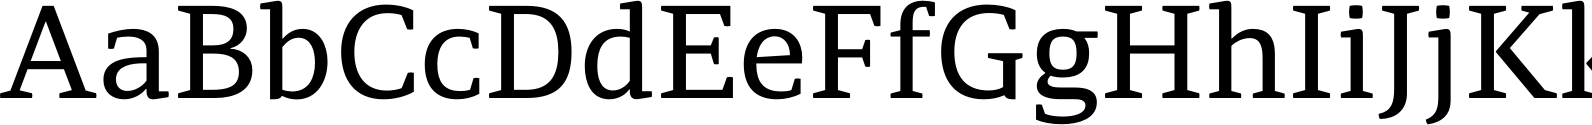 PFAdamantPro Regular Font